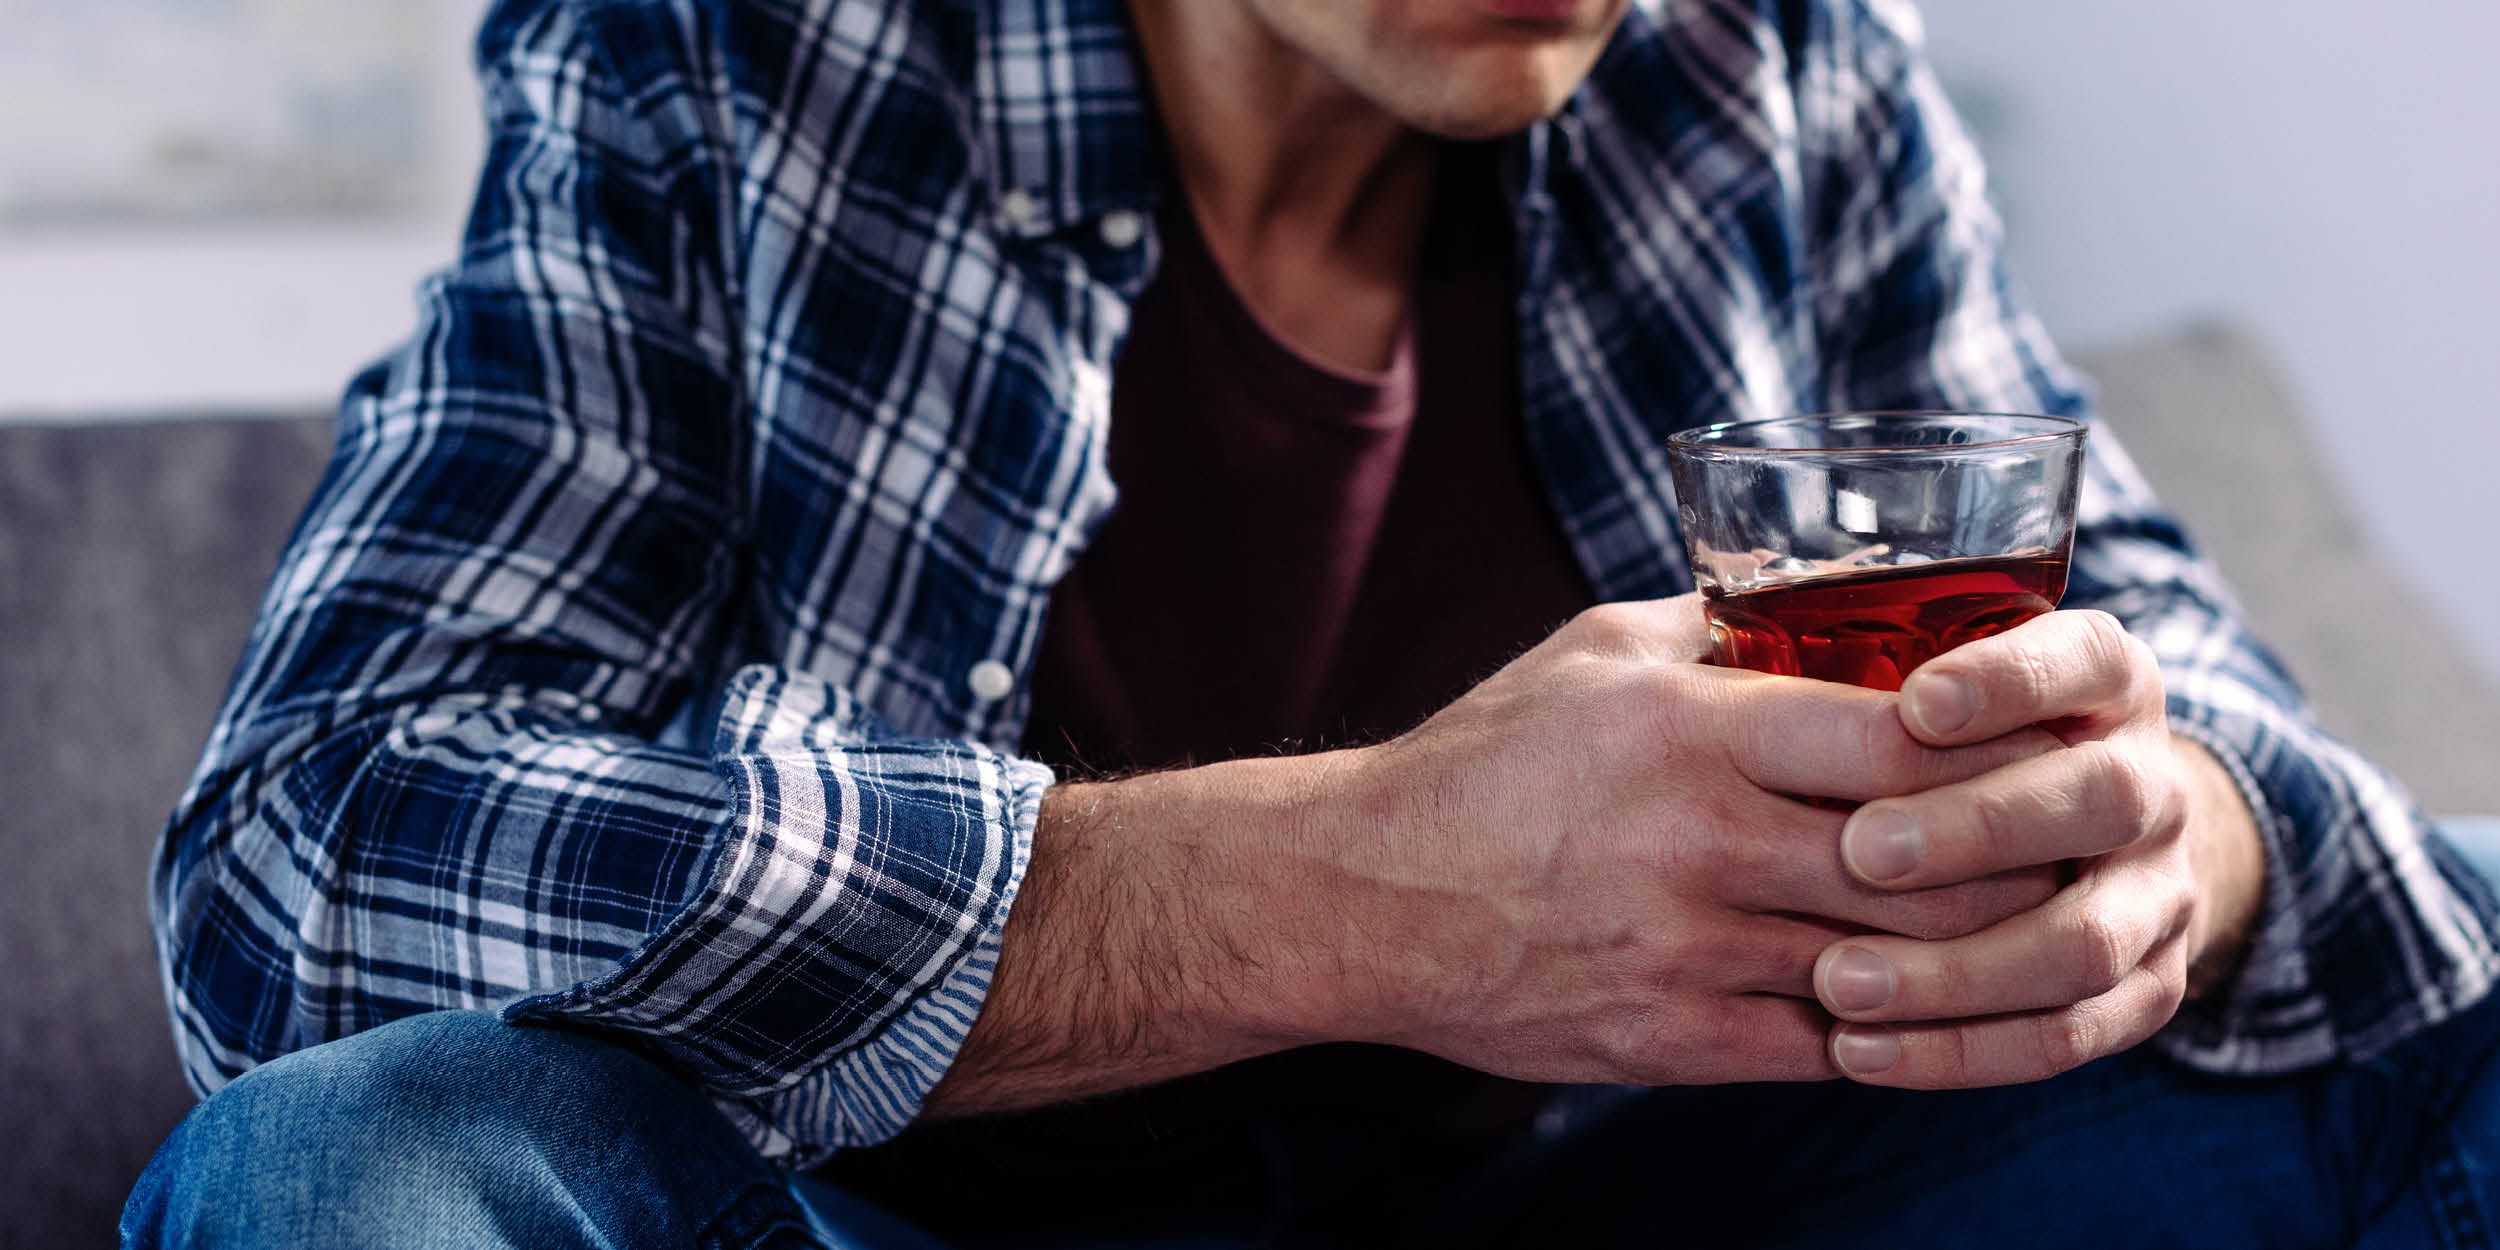 Man holding a cup of liquor at risk of developing alcohol induced psychosis